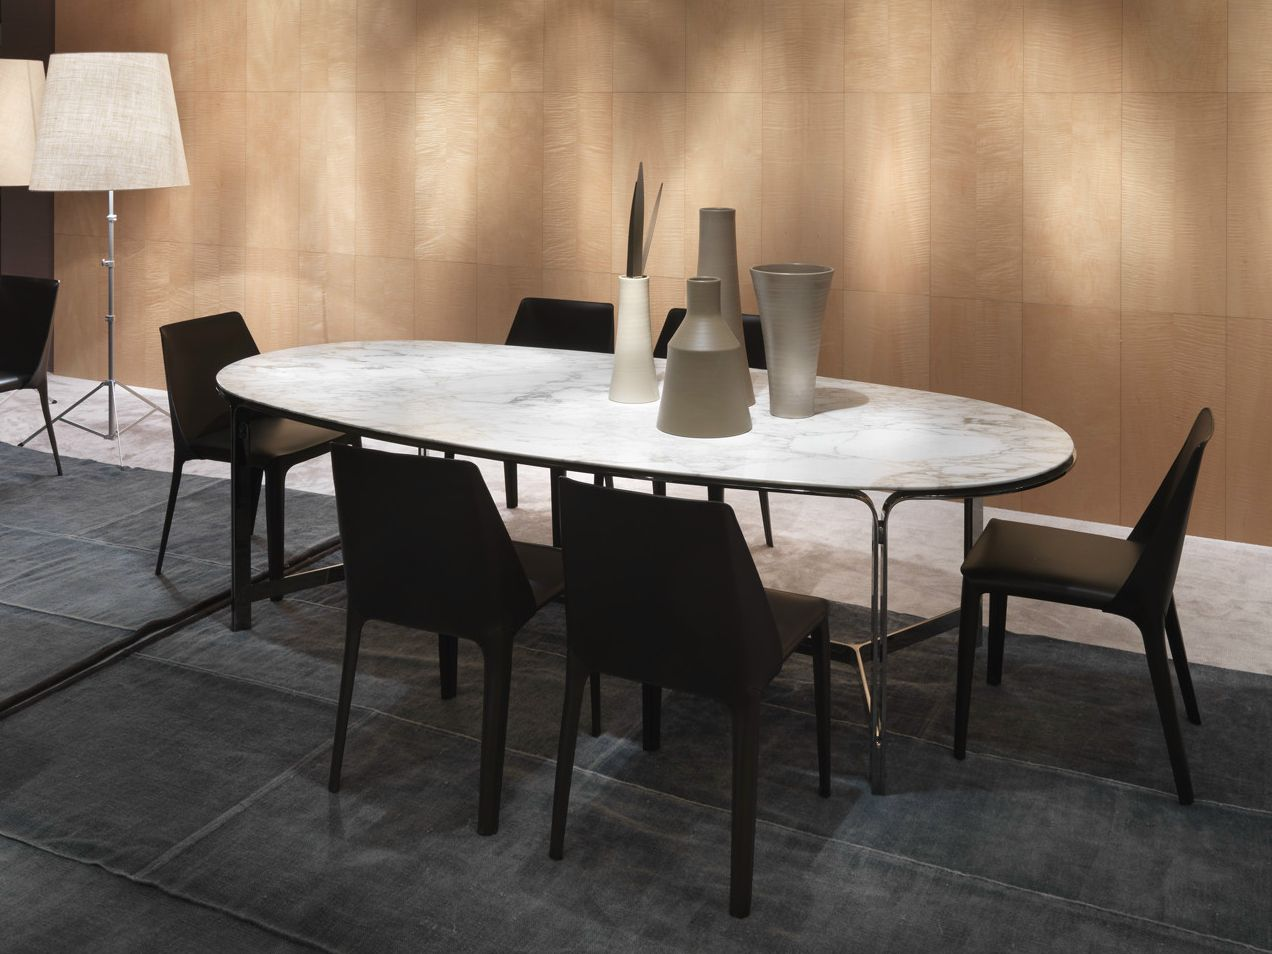 Oval marble dining table - Clarke Table By Flexform Design Carlo Colombo Oval Dining Tablesmarble Tablesdining